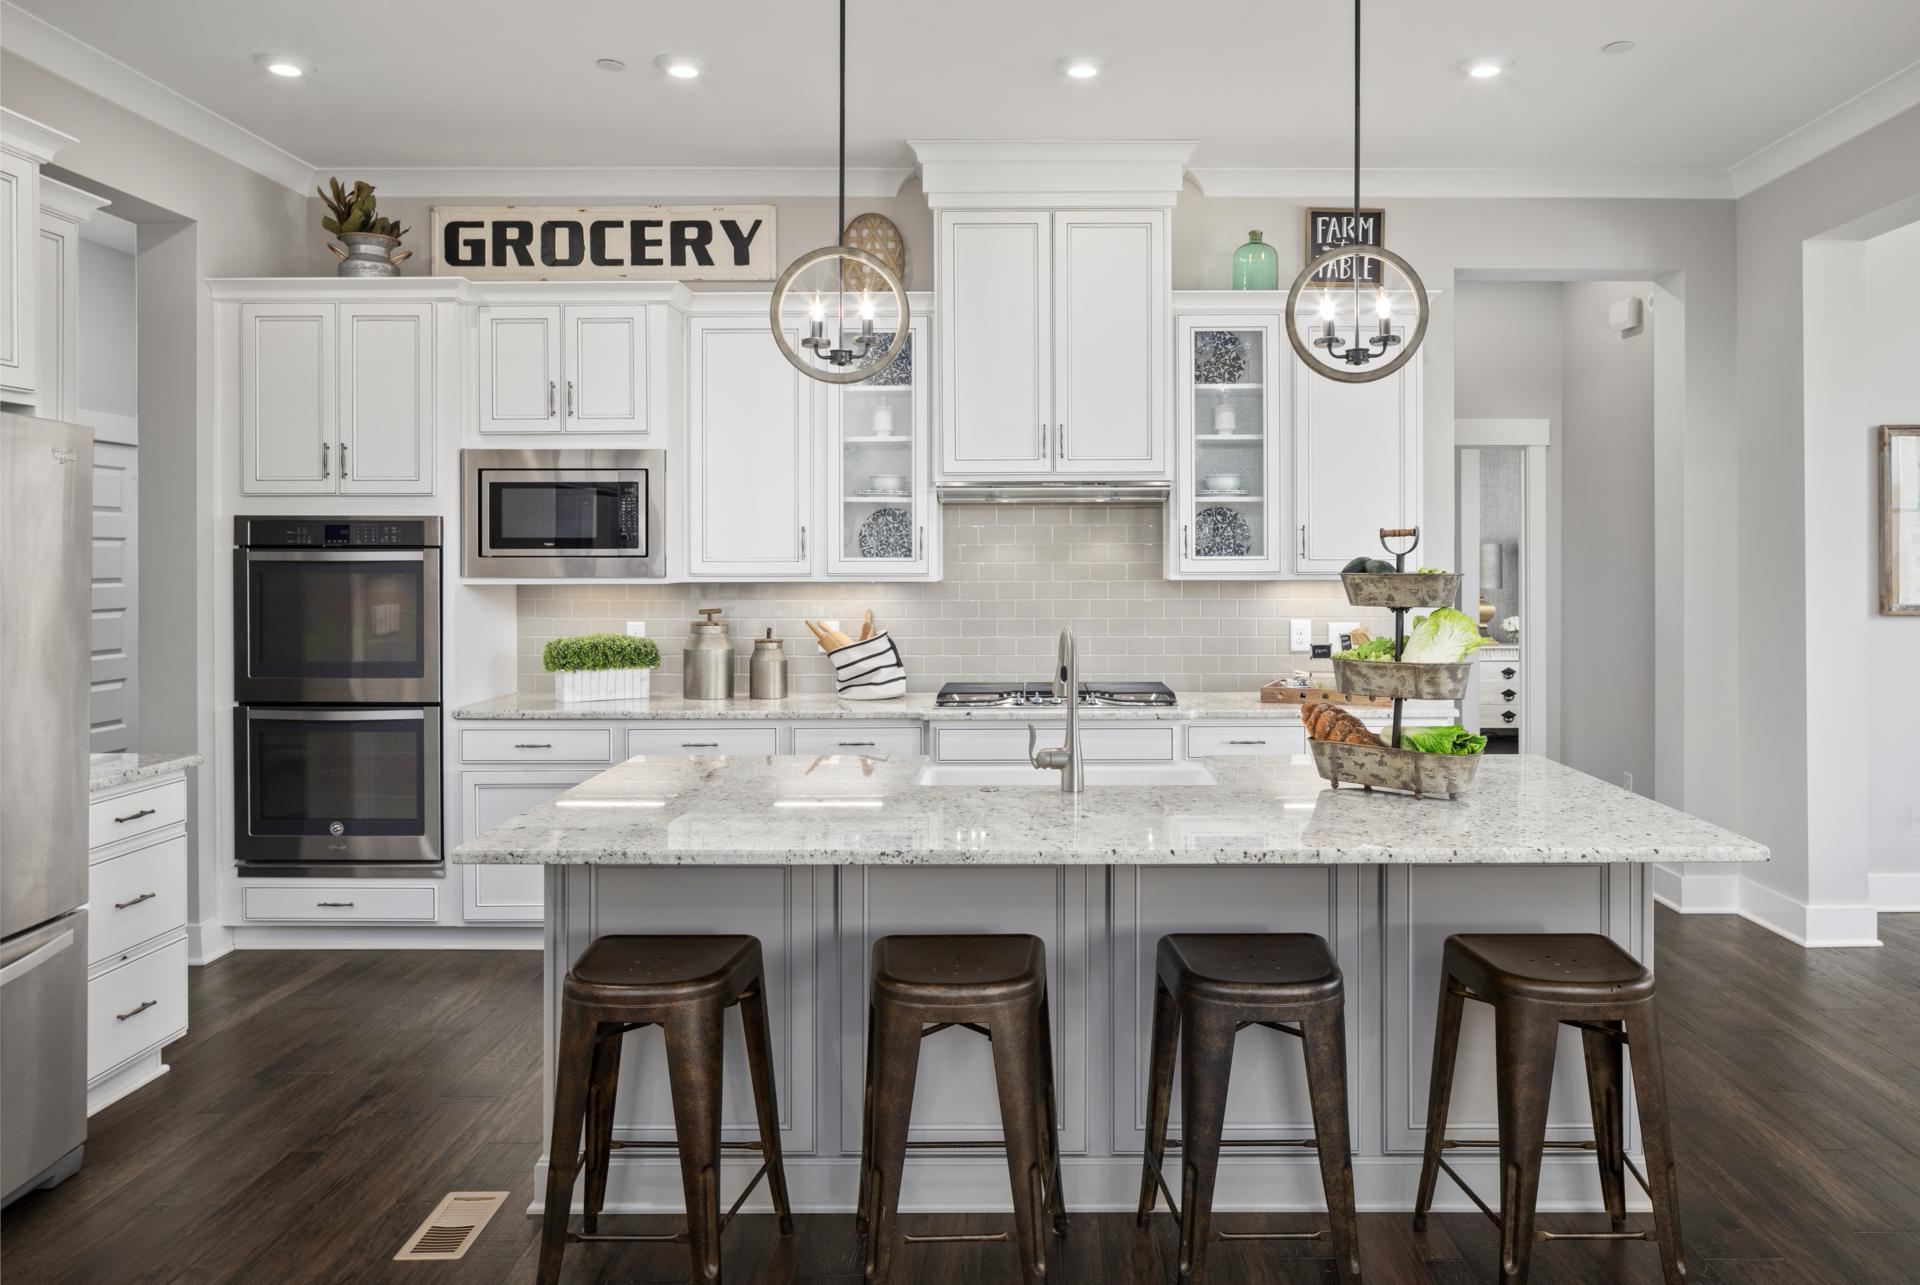 Kitchen featured in the Colton By Drees Homes in Nashville, TN